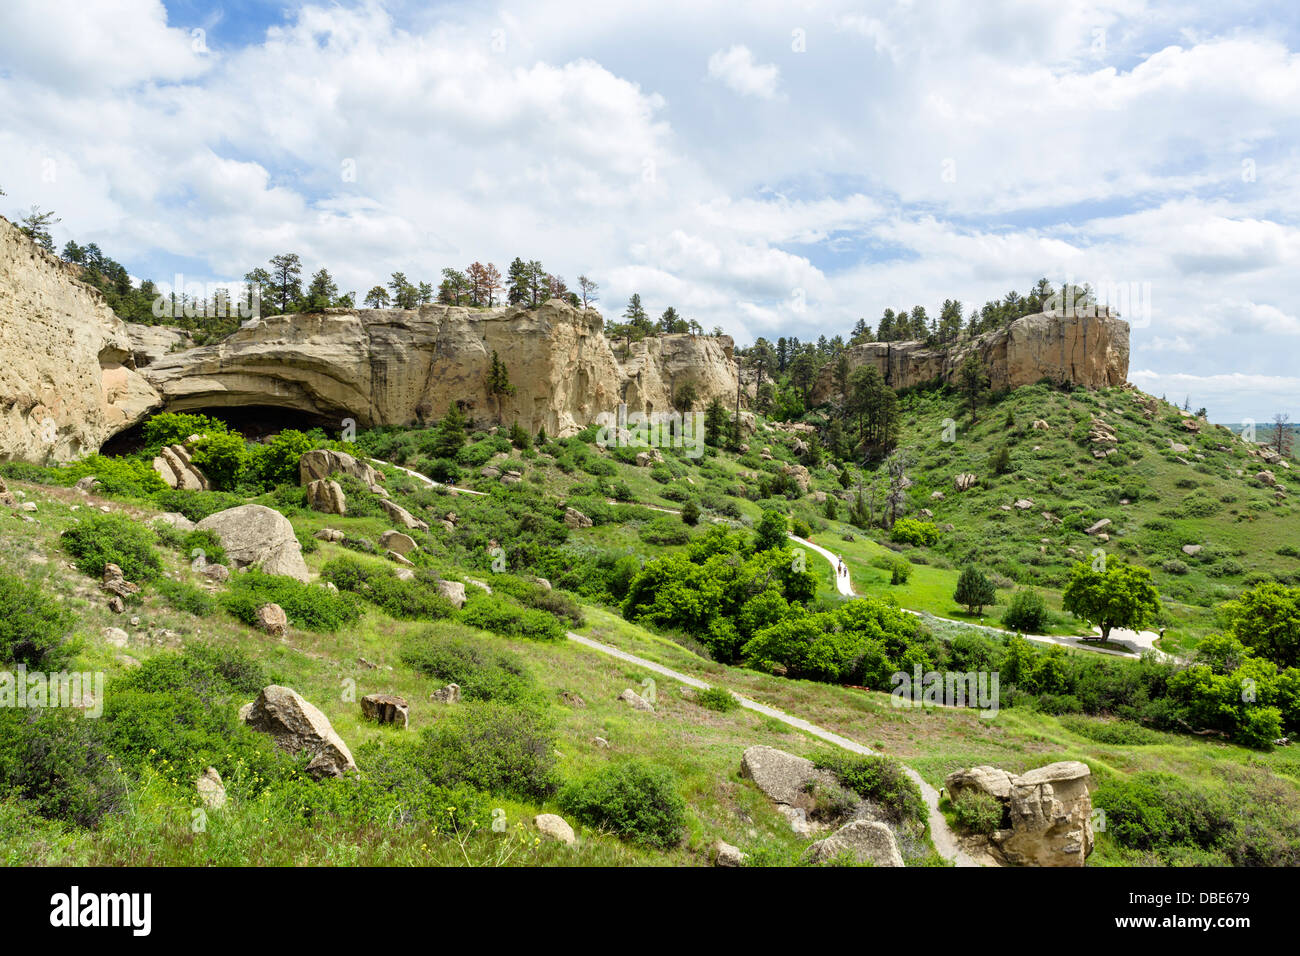 Pictograph Cave State Park, Billings, Montana, USA - Stock Image